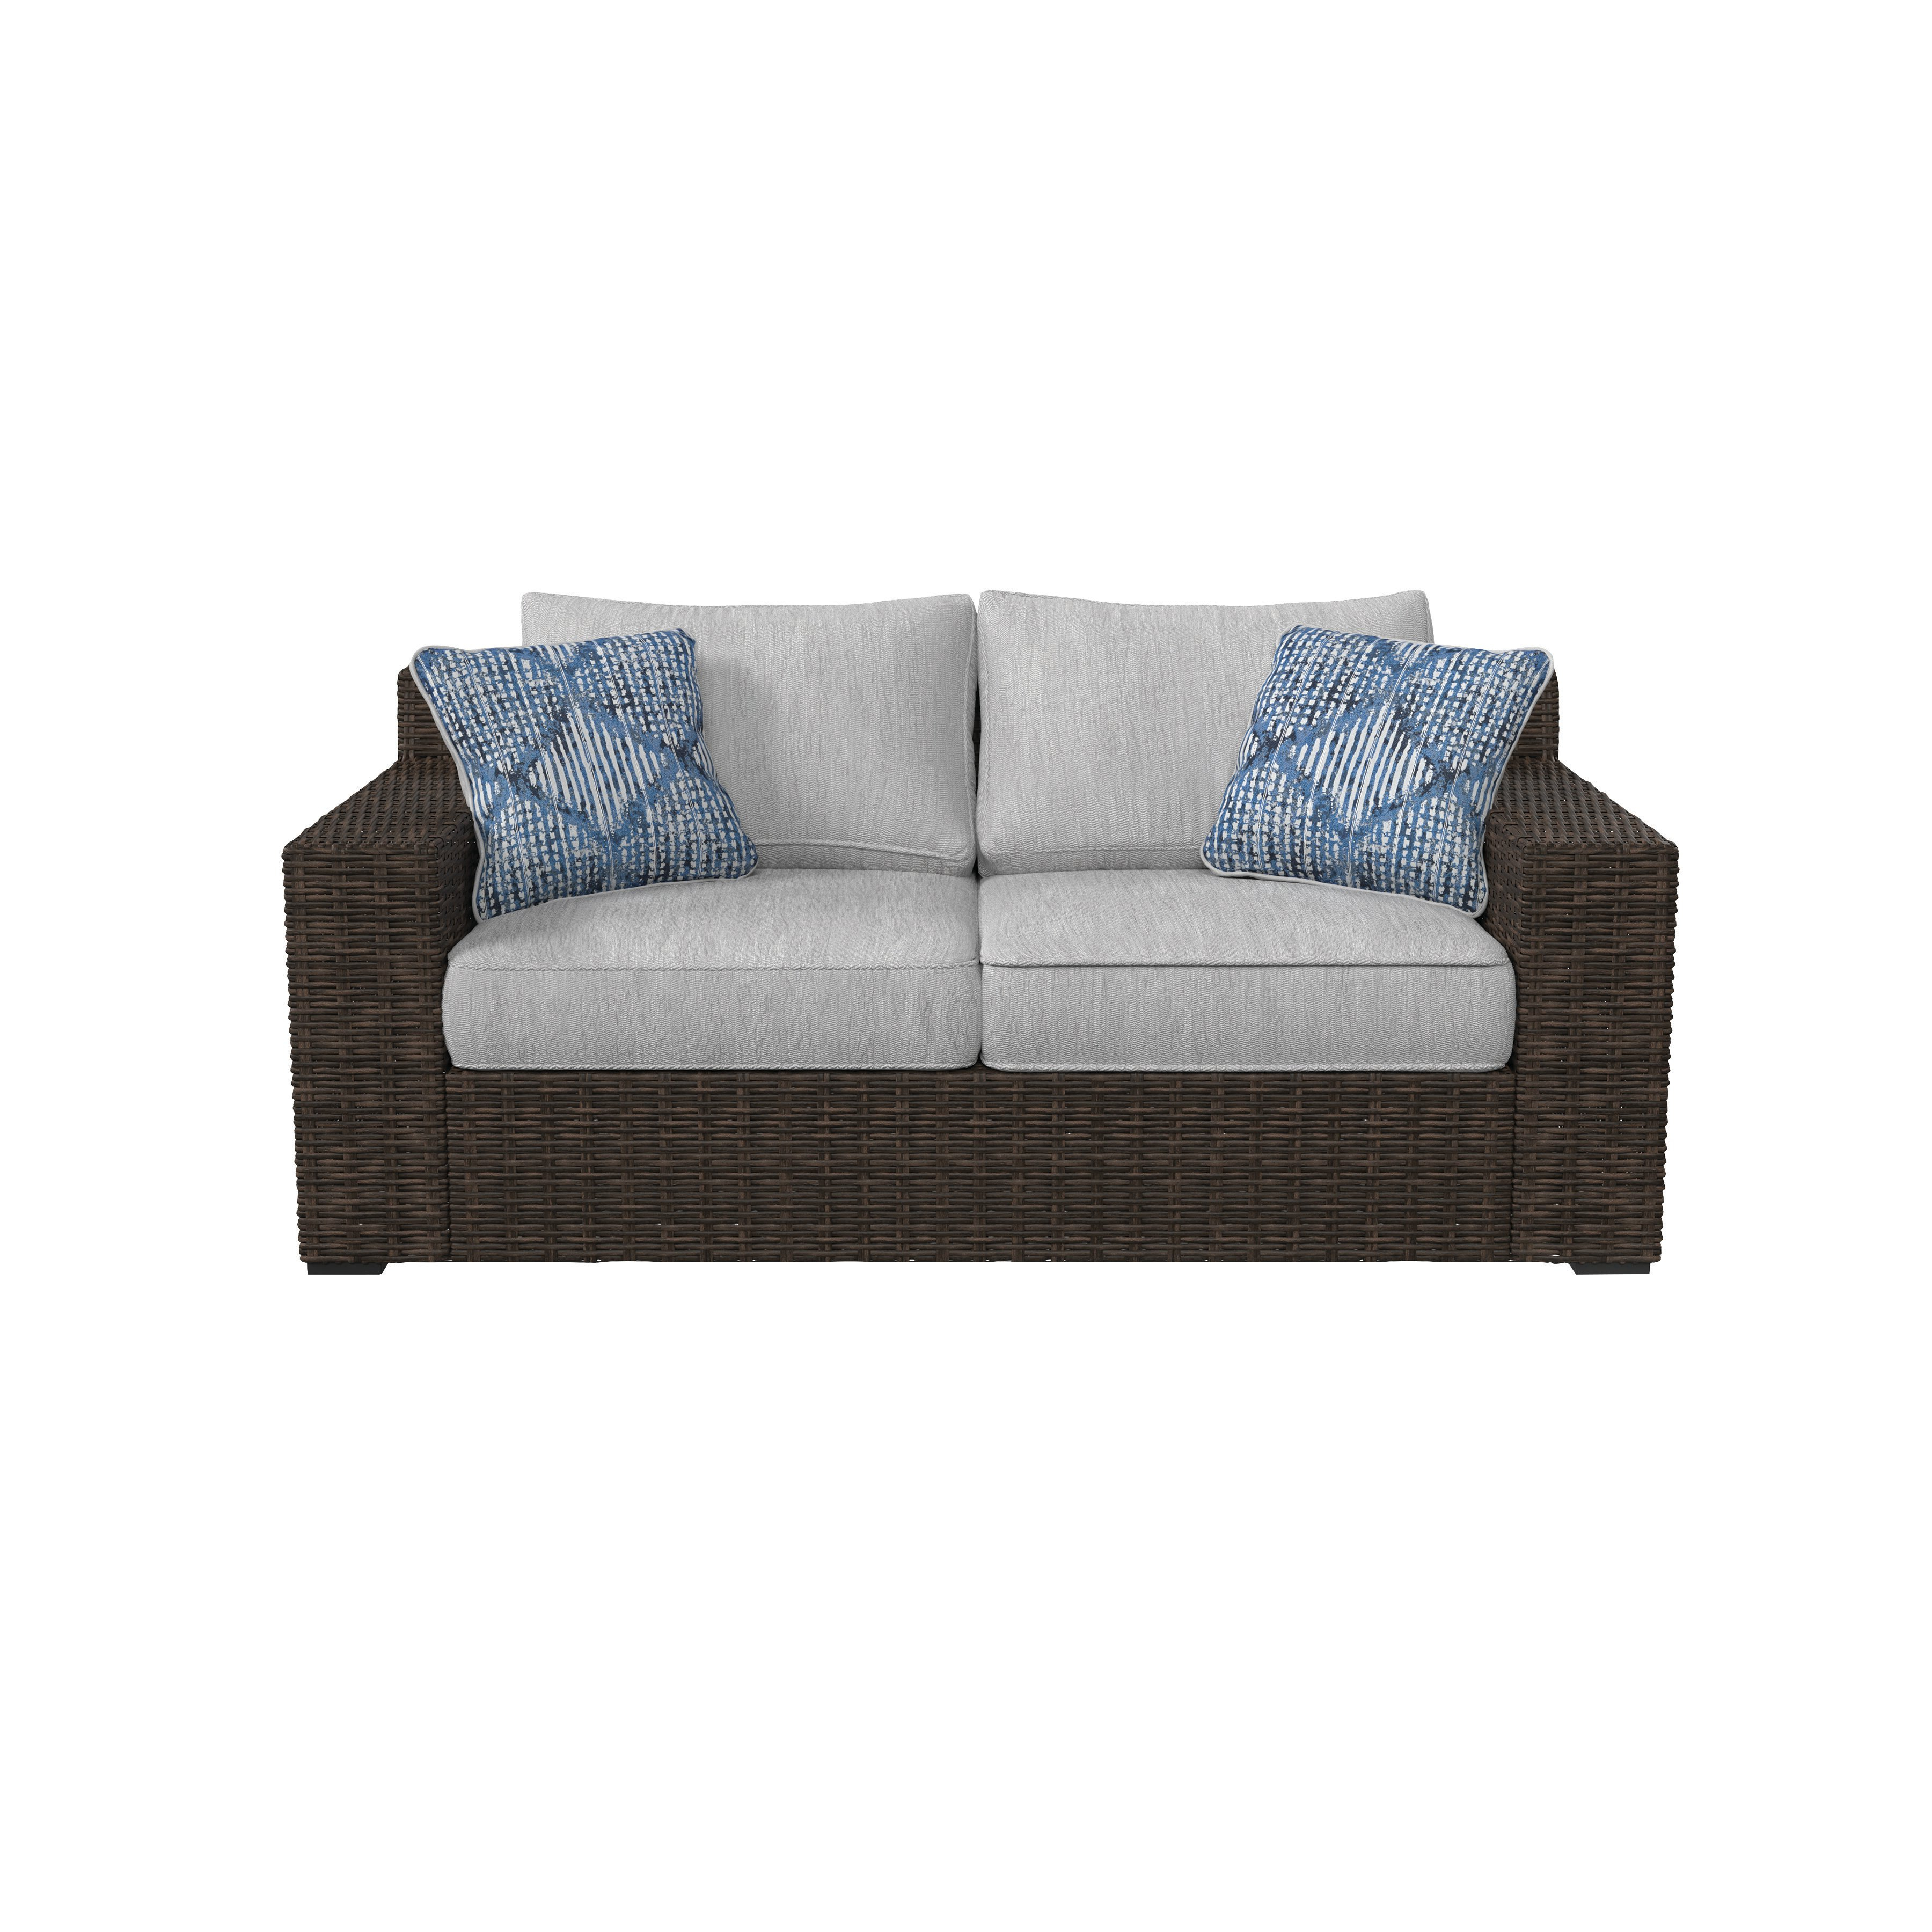 Oreland Loveseat With Cushions In Trendy Camak Patio Loveseats With Cushions (View 17 of 20)